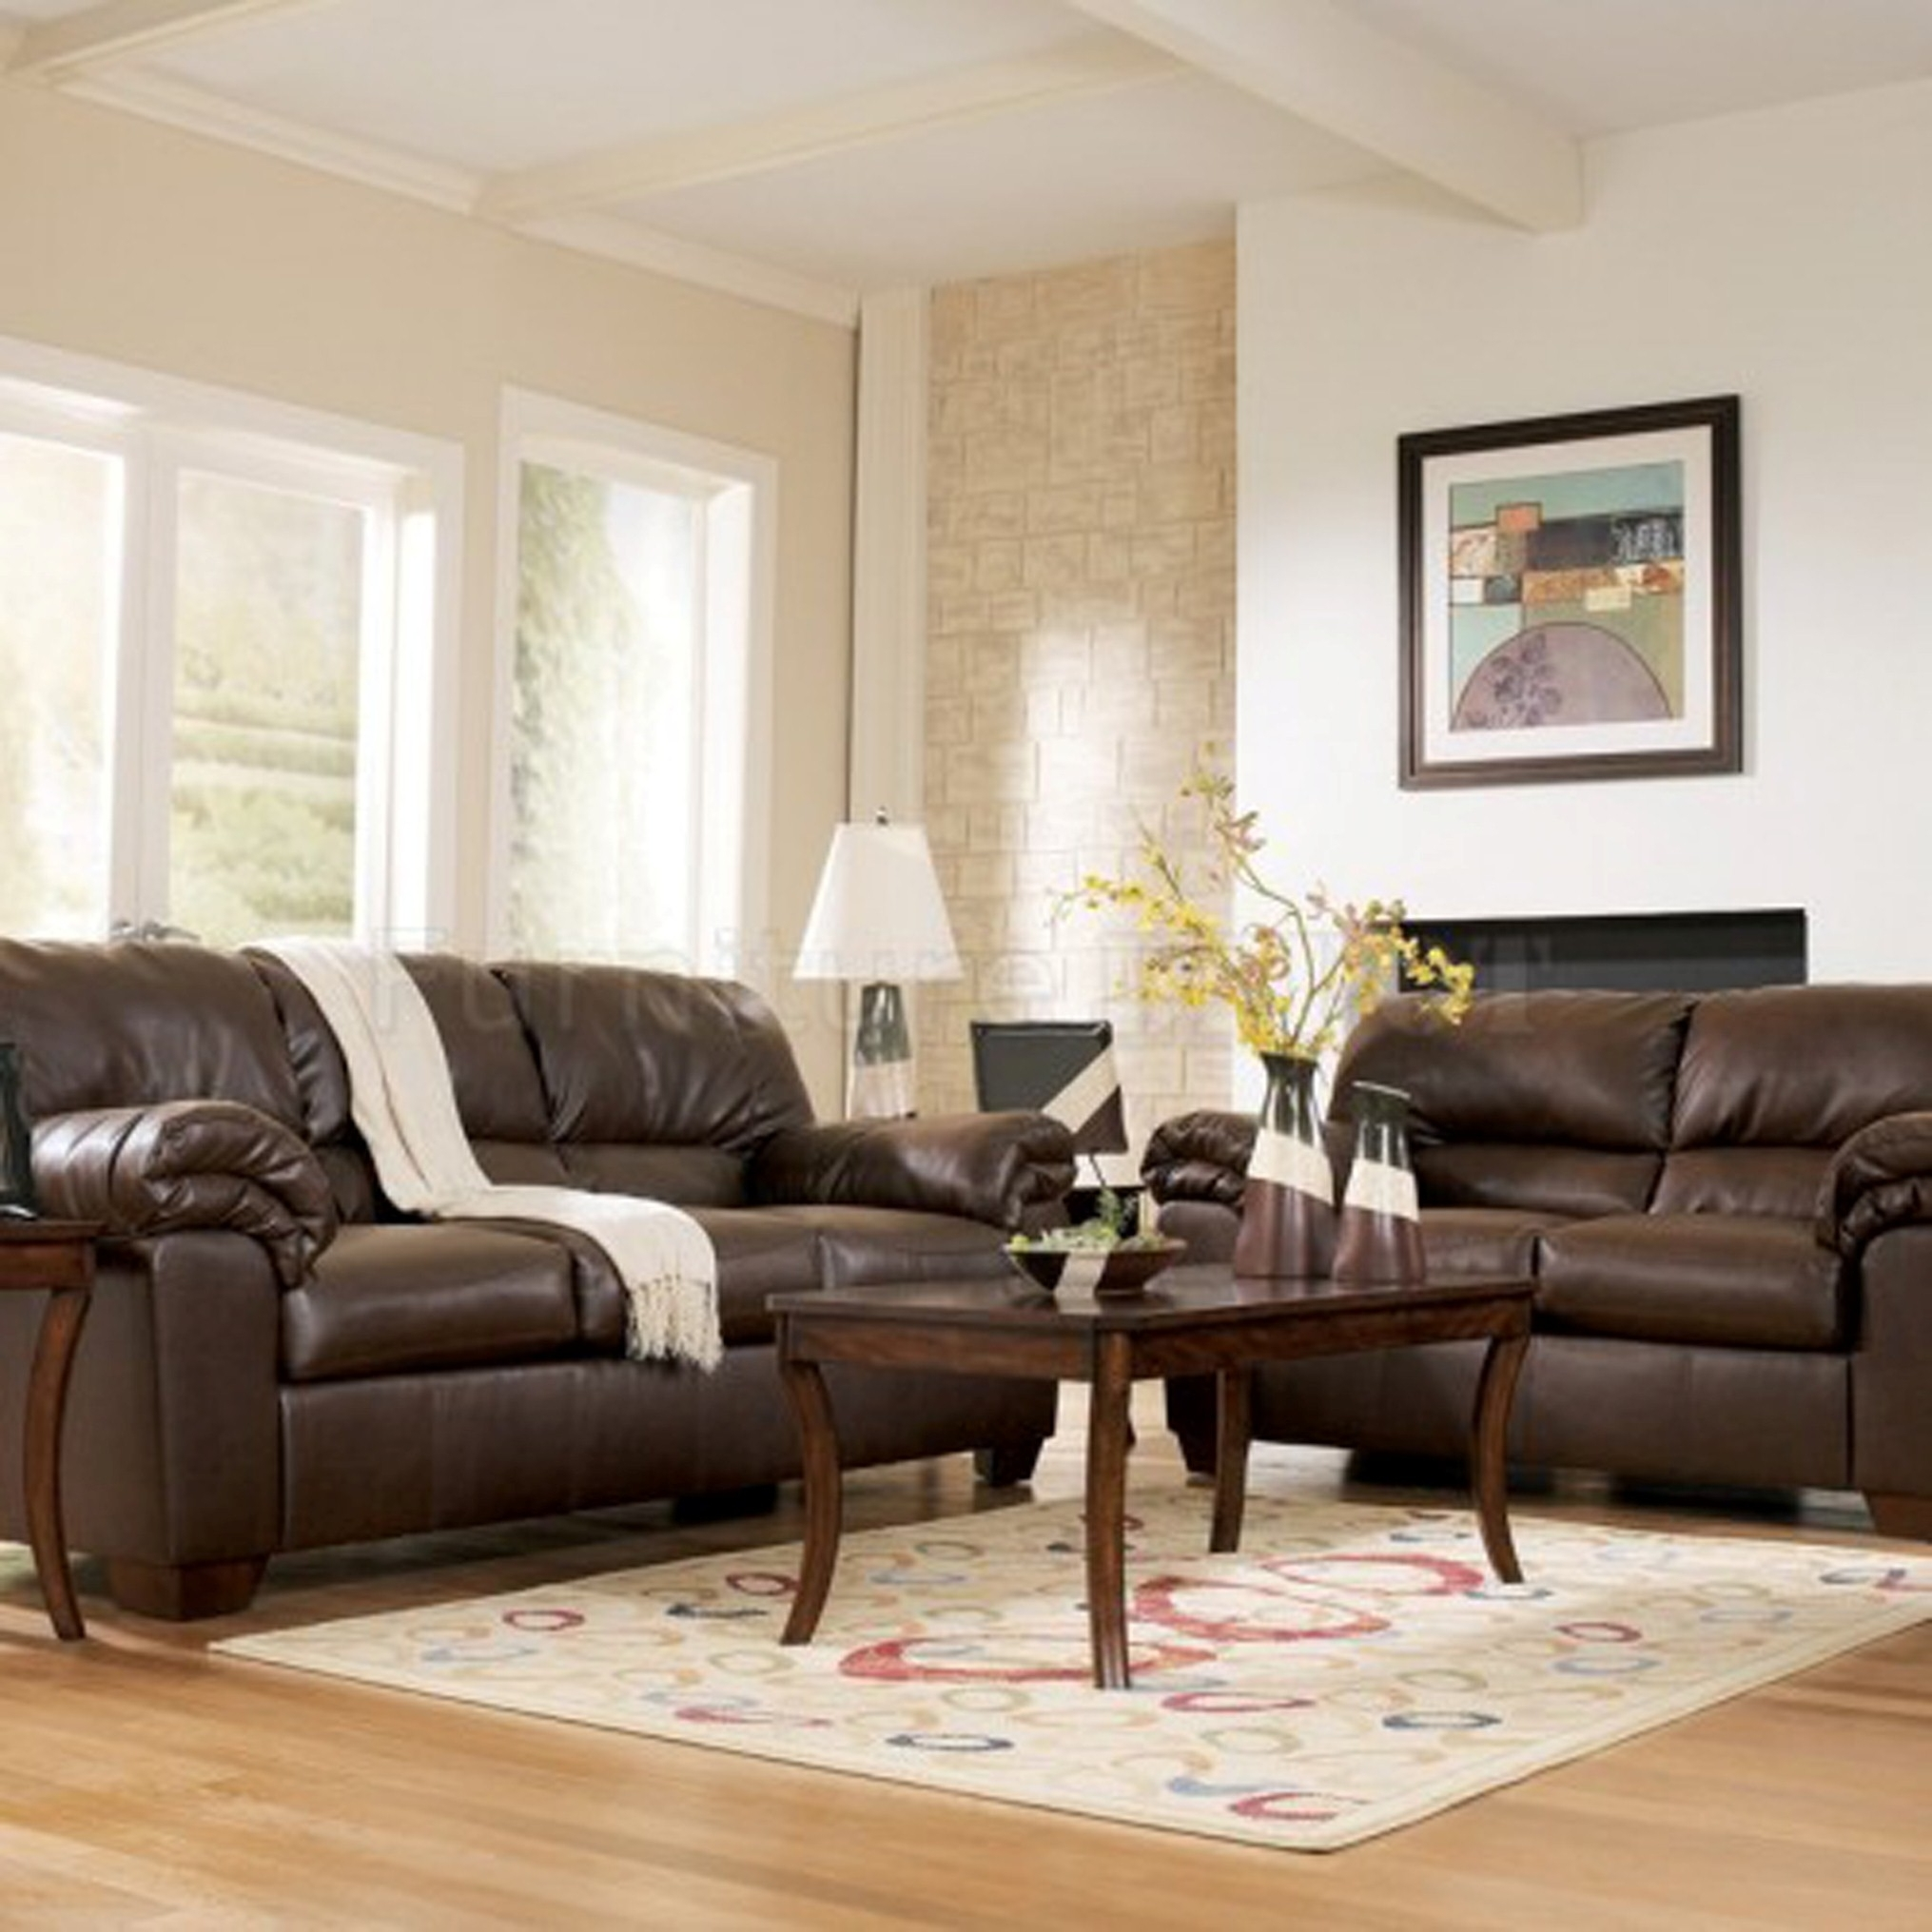 living room ideas brown leather sofa. Black Bedroom Furniture Sets. Home Design Ideas